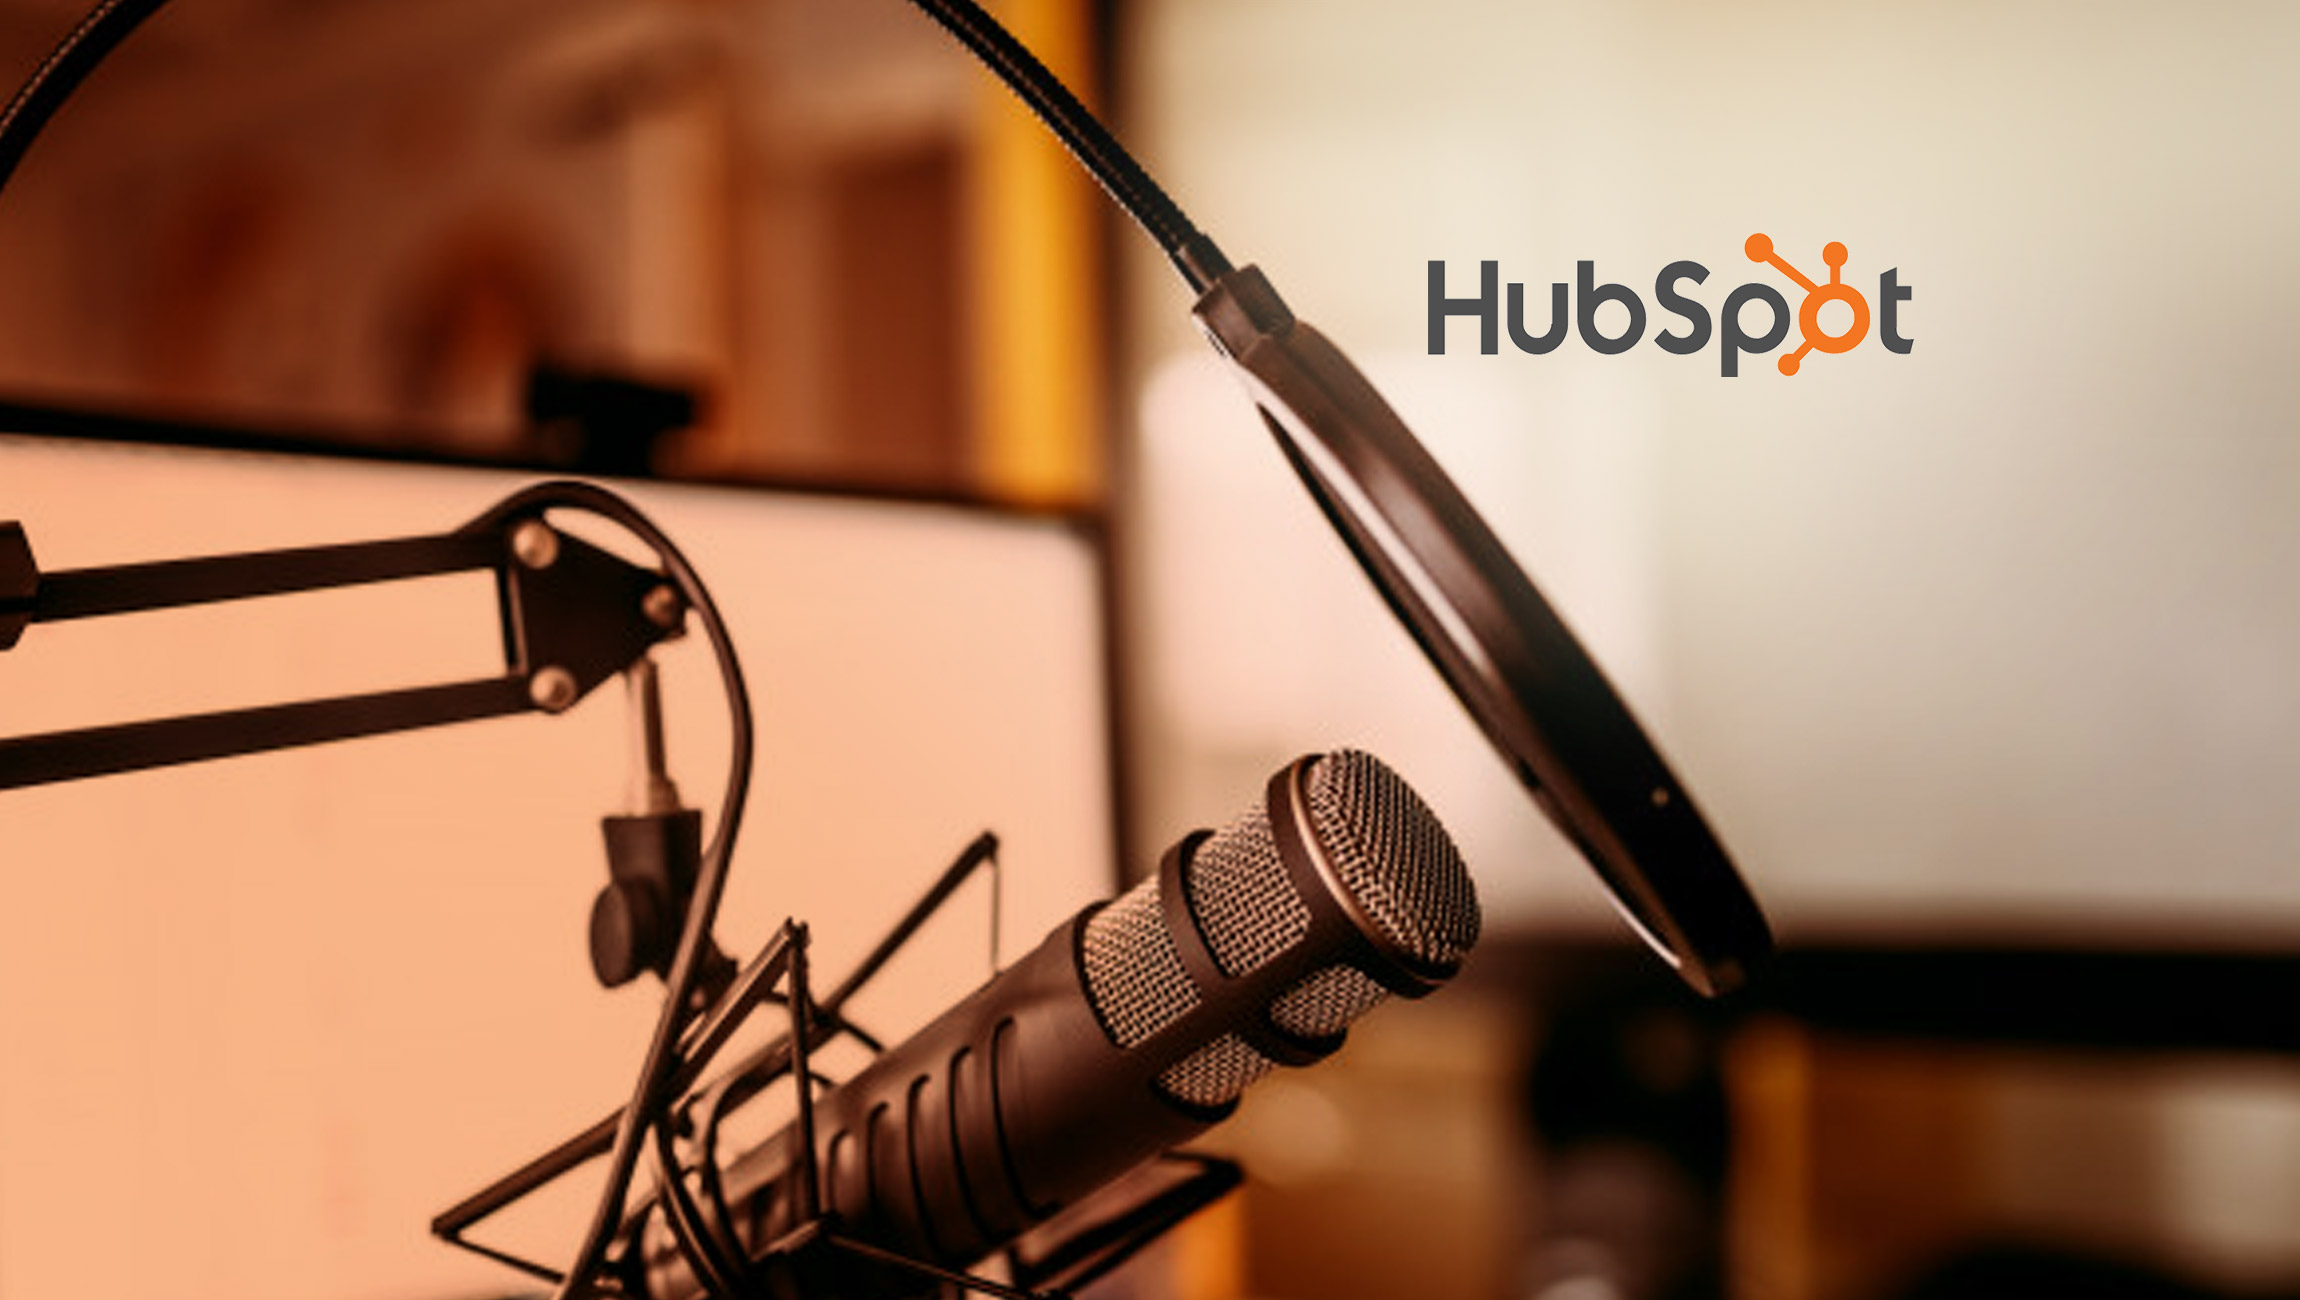 HubSpot Launches A Podcast Mini Series About The Future Of Work